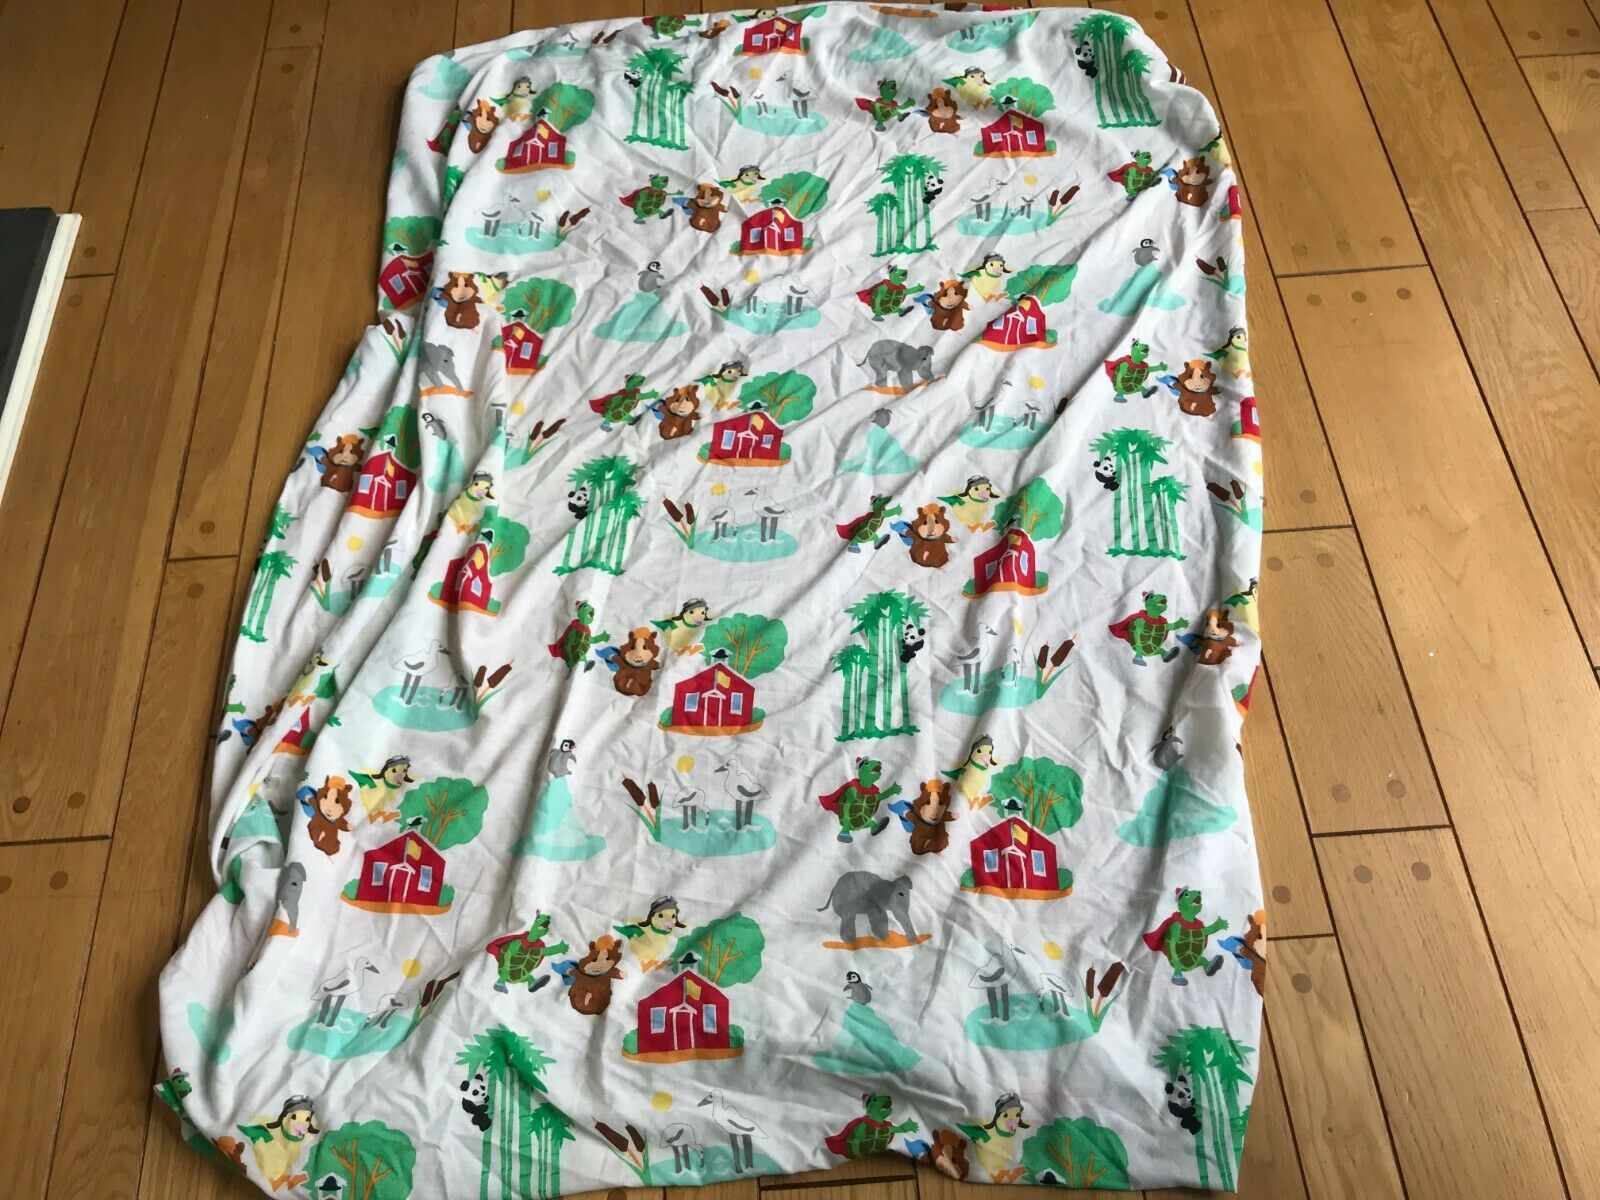 Nick Jr 2008 Wonder Pets TWIN Size Fitted Bed Sheet Ming Tuck Linny School House - $24.07